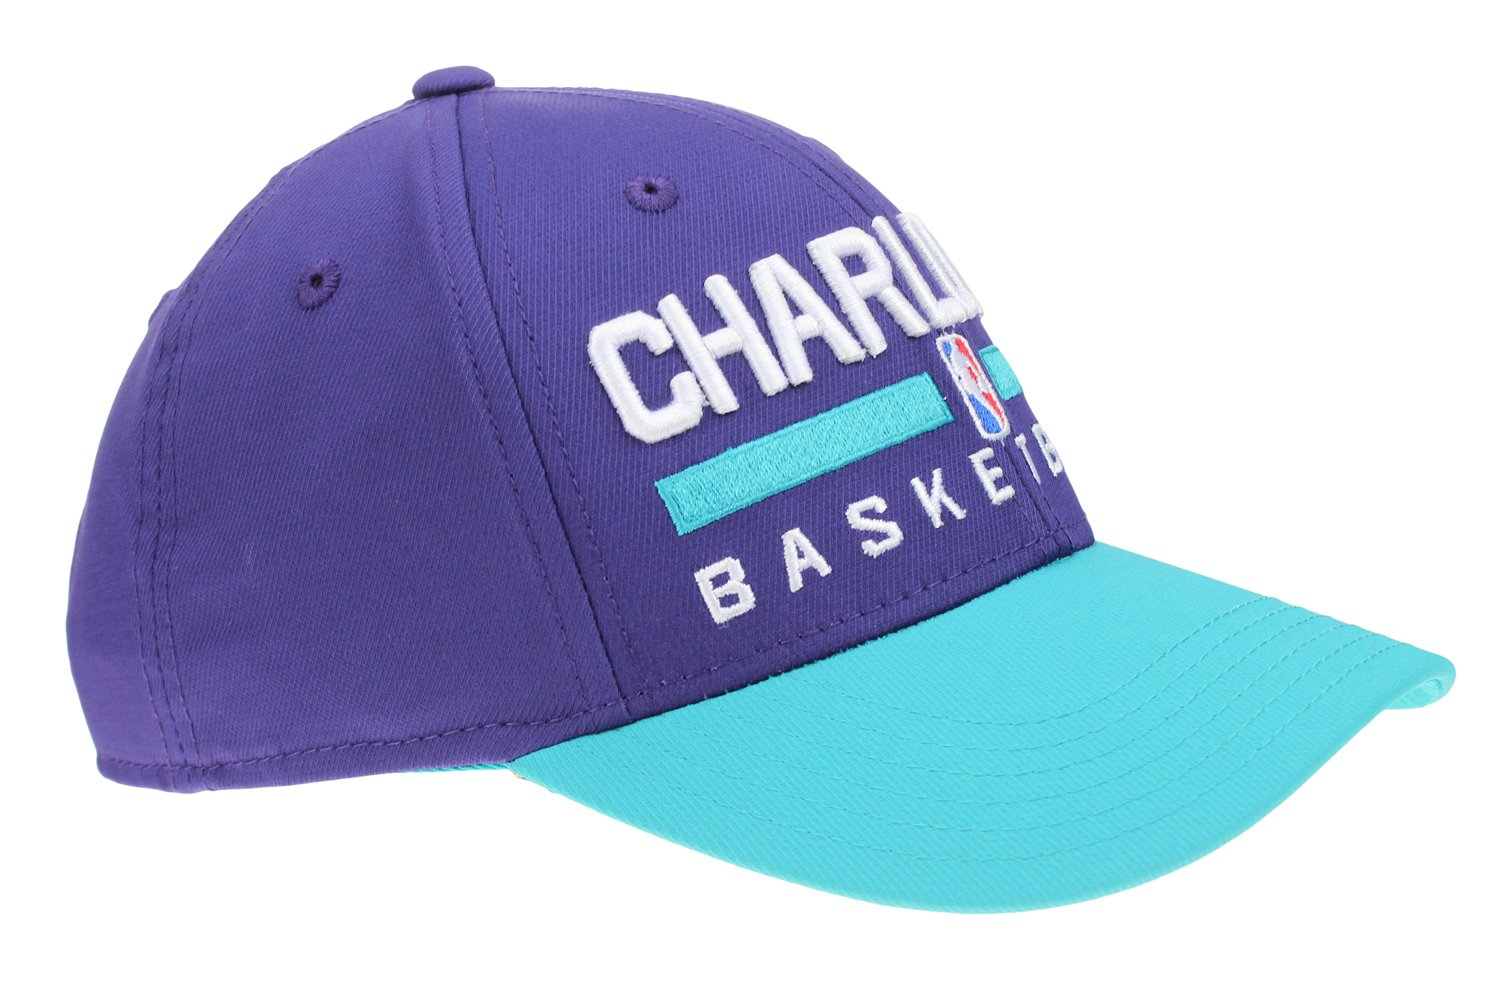 7e378bc2bfbd4 Amazon.com   Outerstuff NBA Youth Boys Charlotte Hornets Snapback Team Practice  Hat